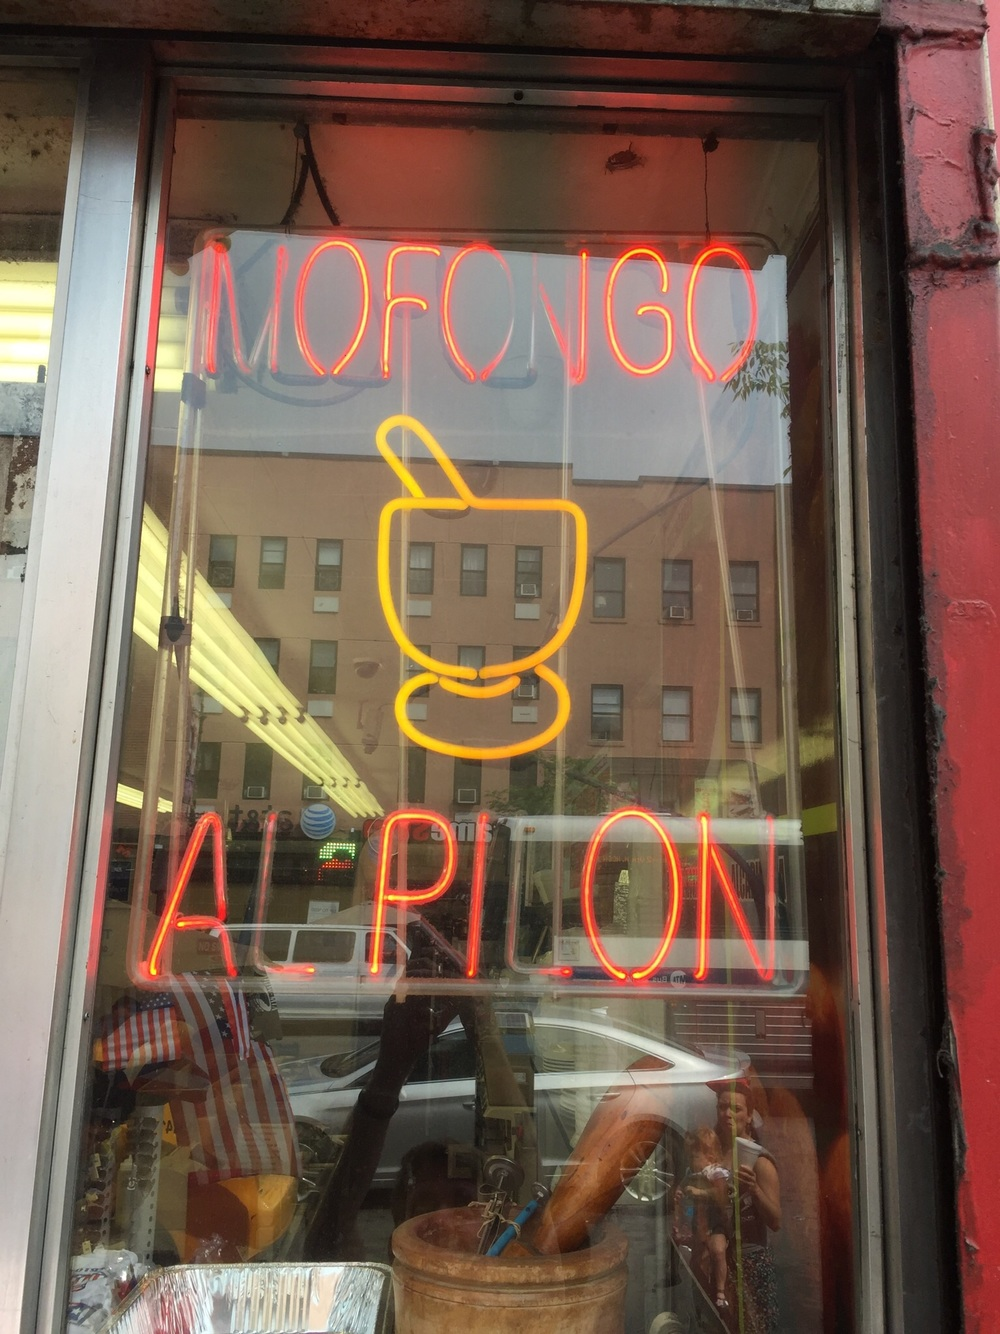 Found this Puerto Rican joint in Spanish Harlem on the way to Target.